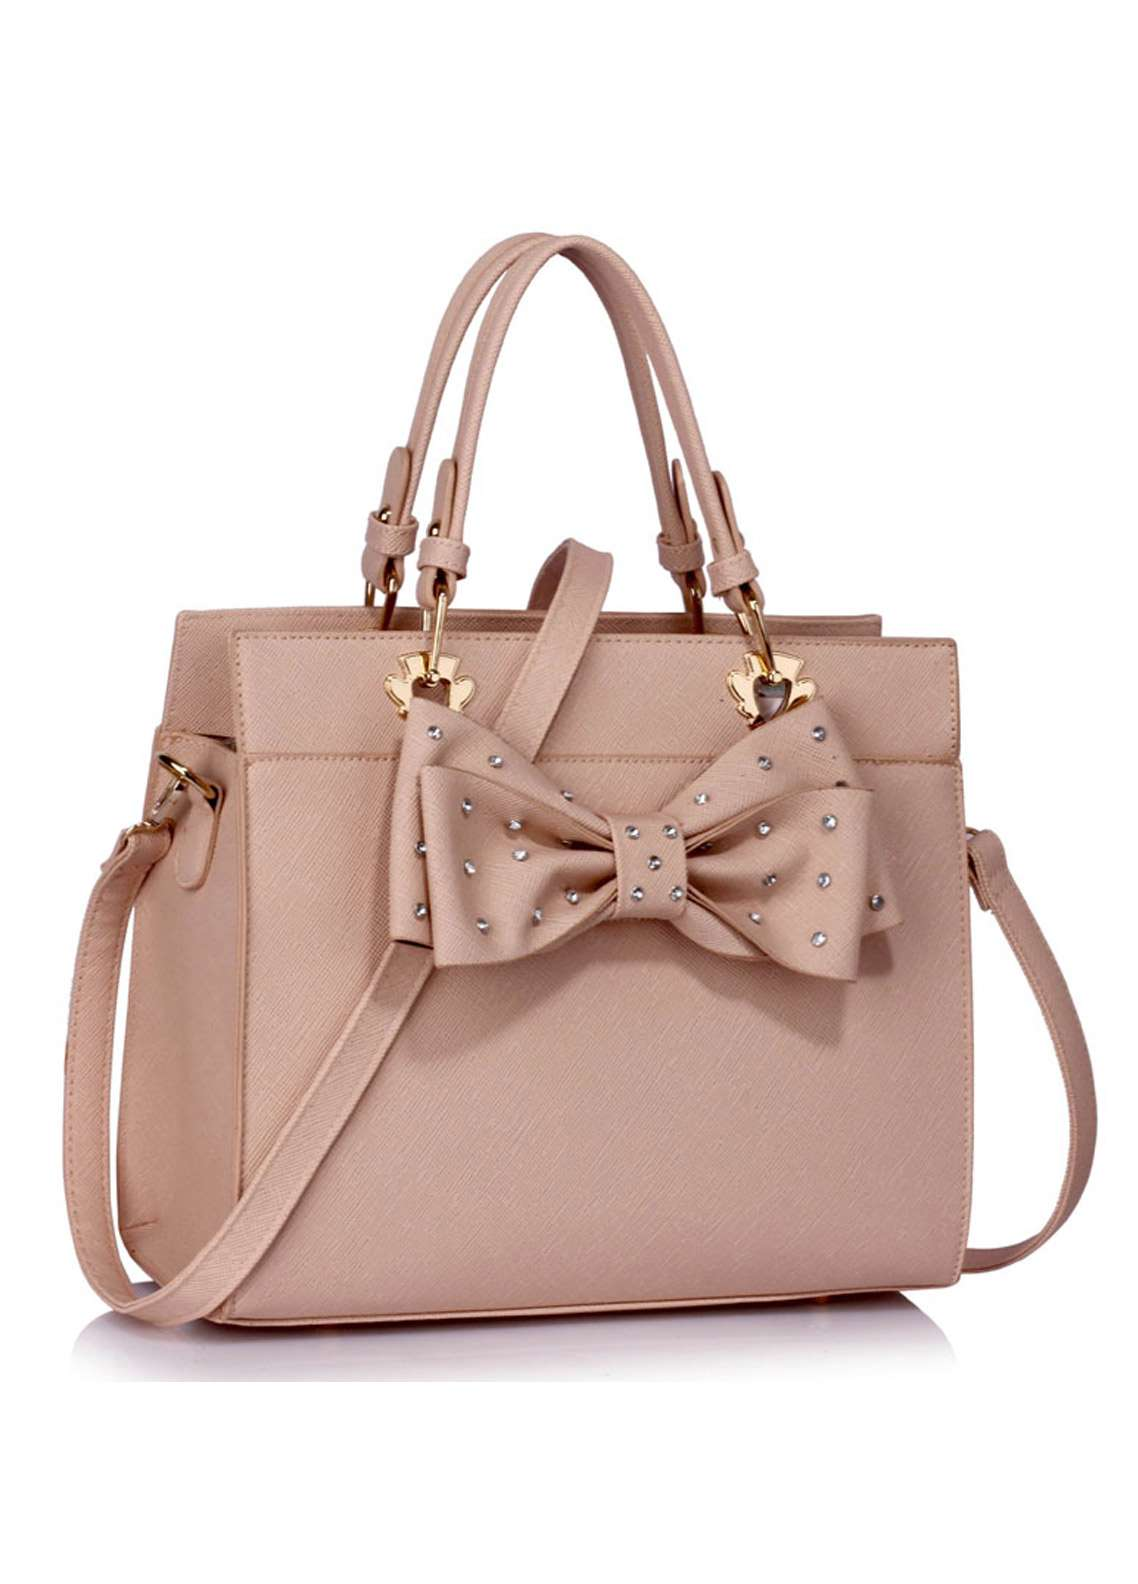 Leesun London Faux Leather Satchels Bags  for Women  Nude with Bow Style